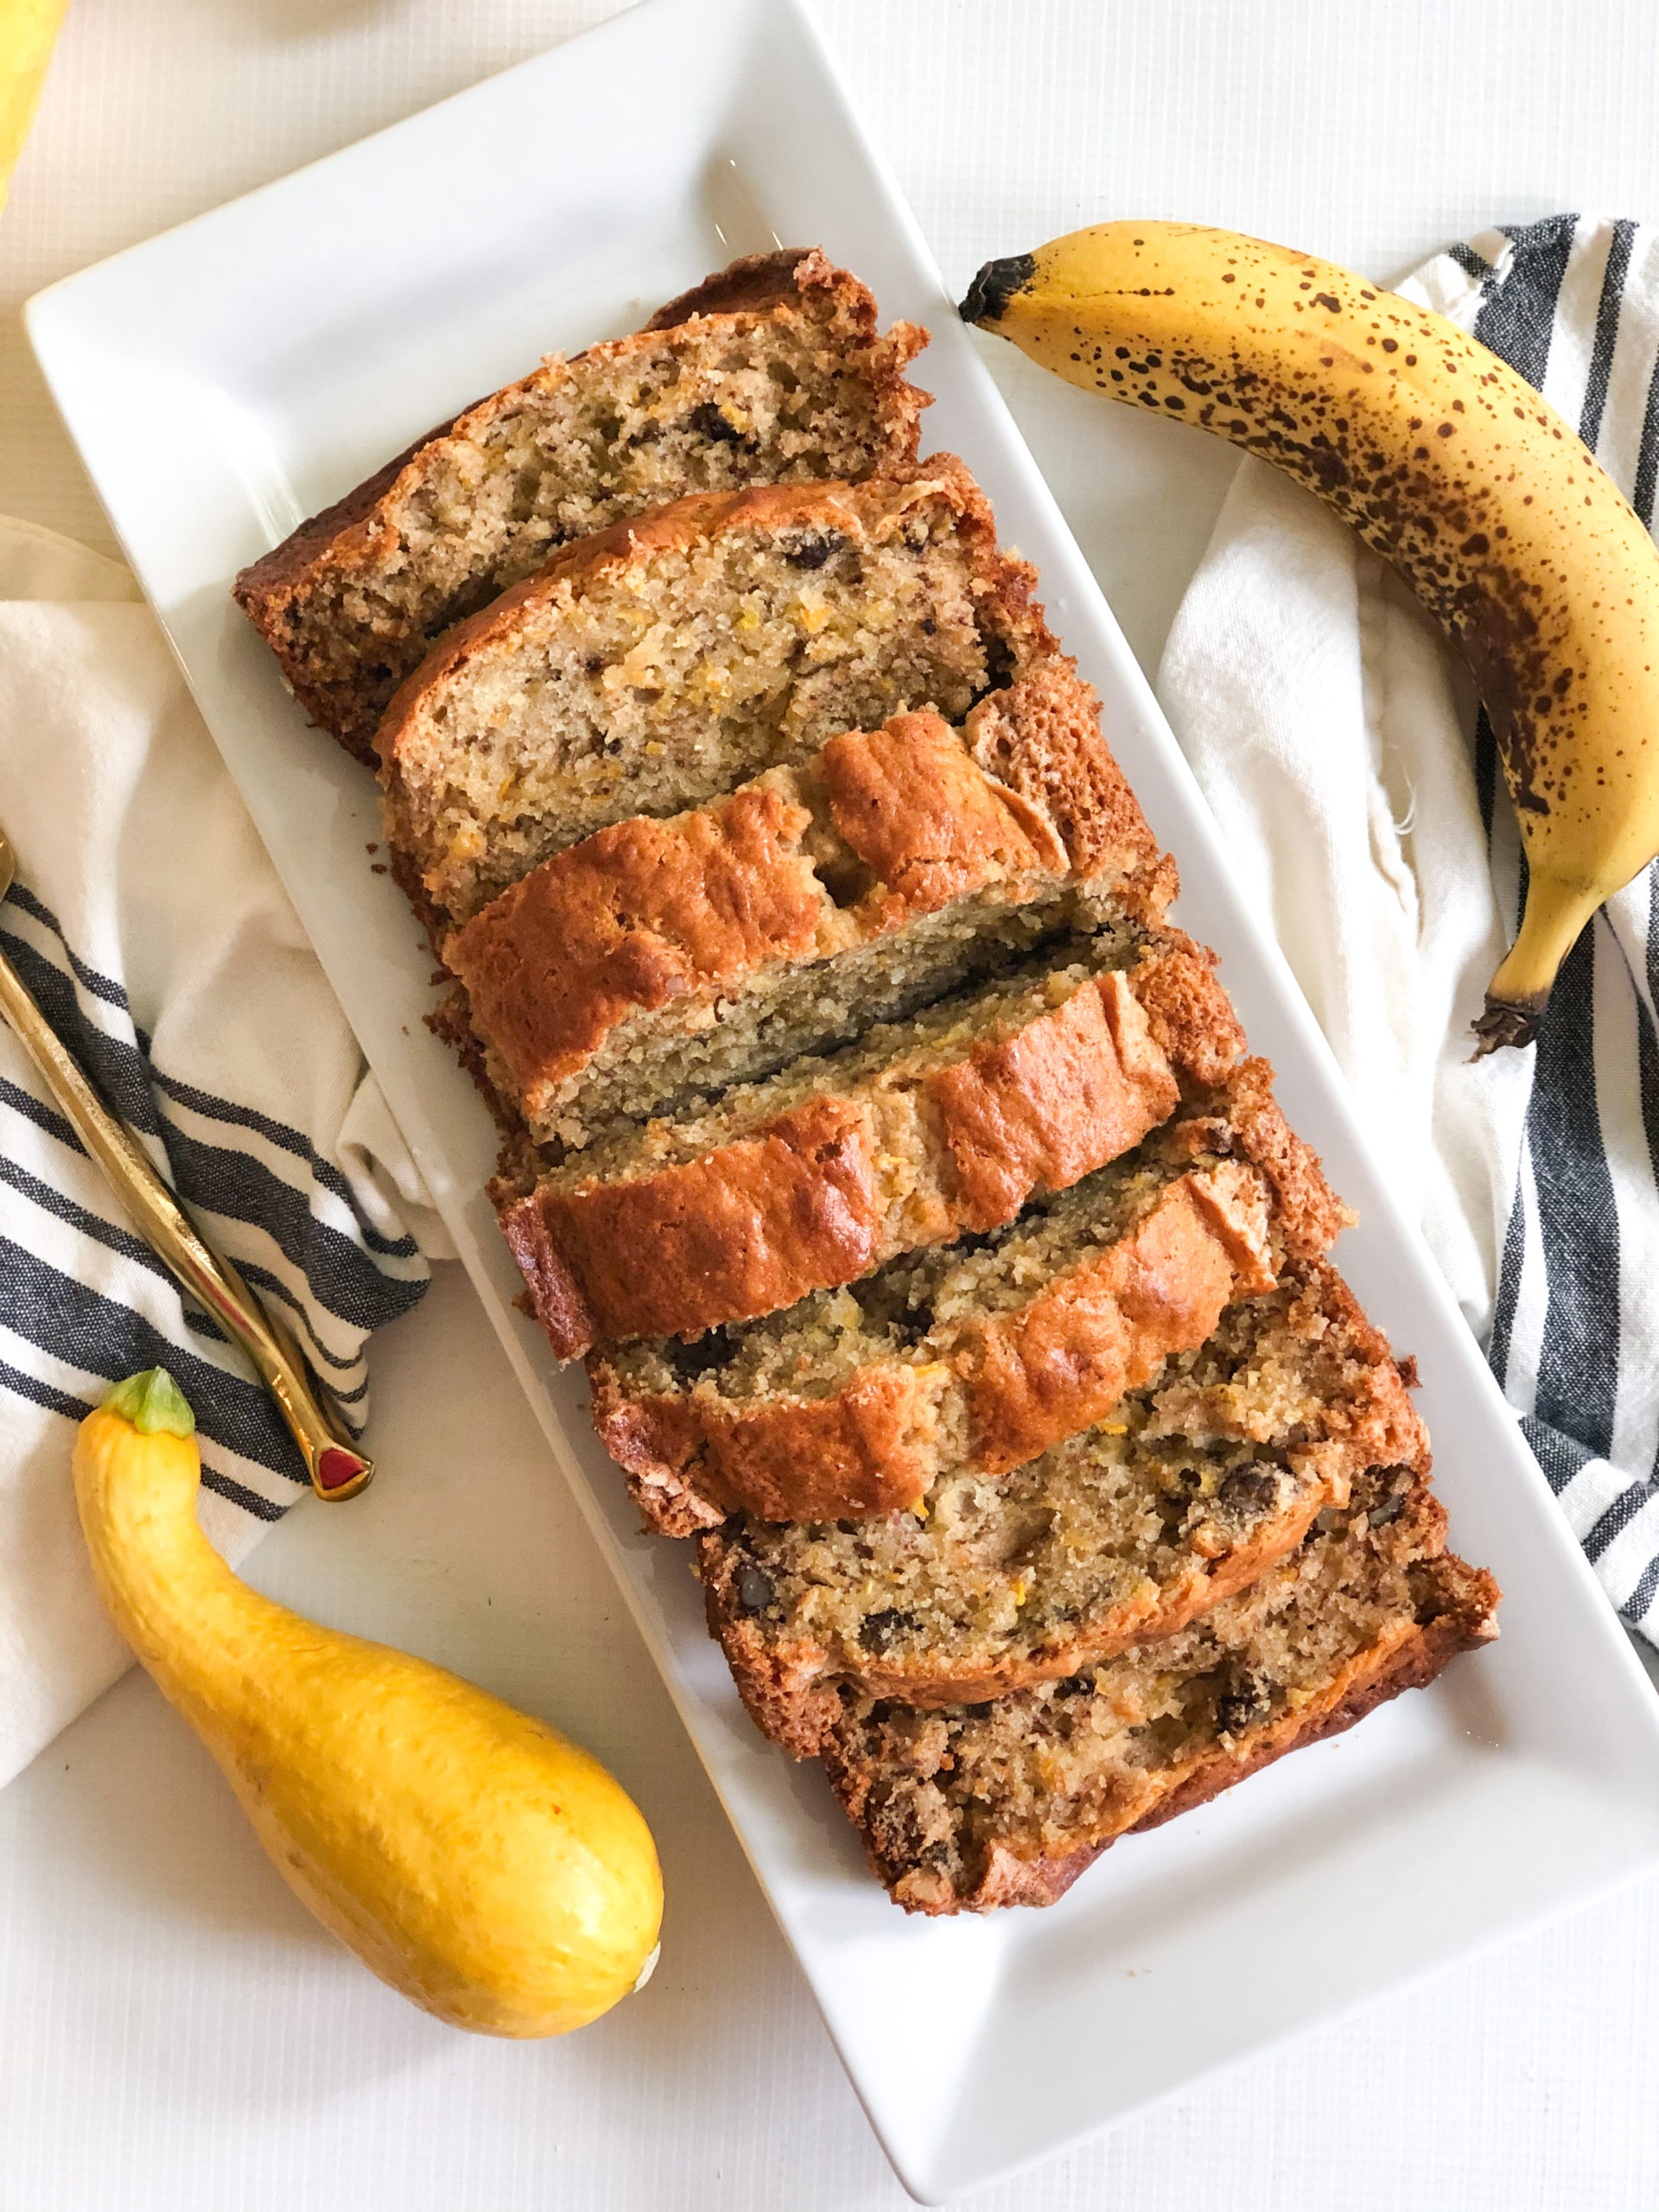 Banana Nut Squash Bread